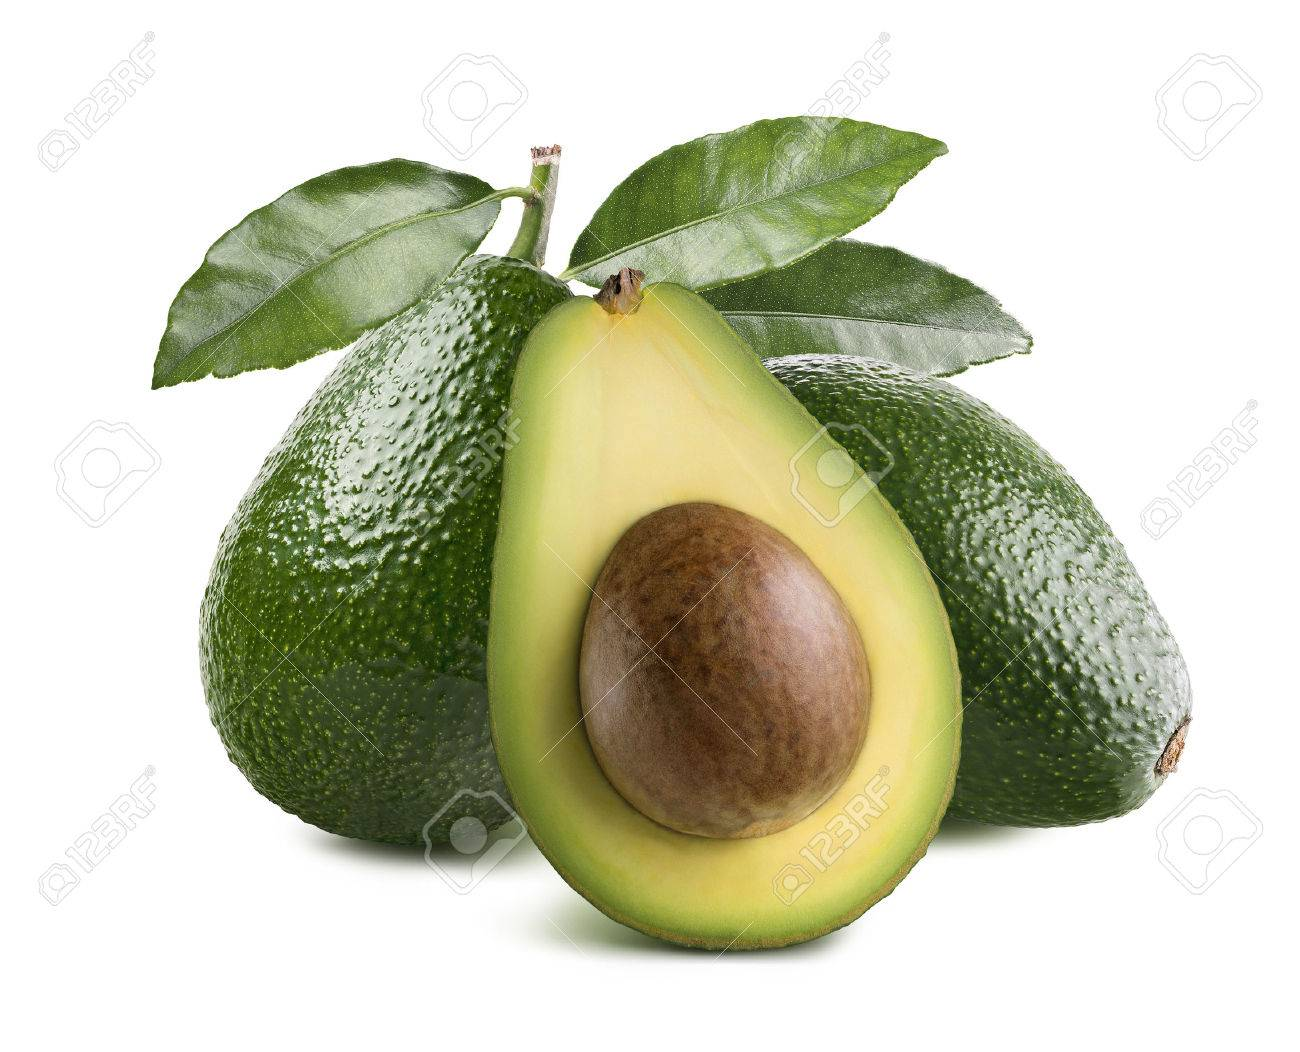 Whole avocados leaves and half with seed isolated on white background as package design element - 47397555